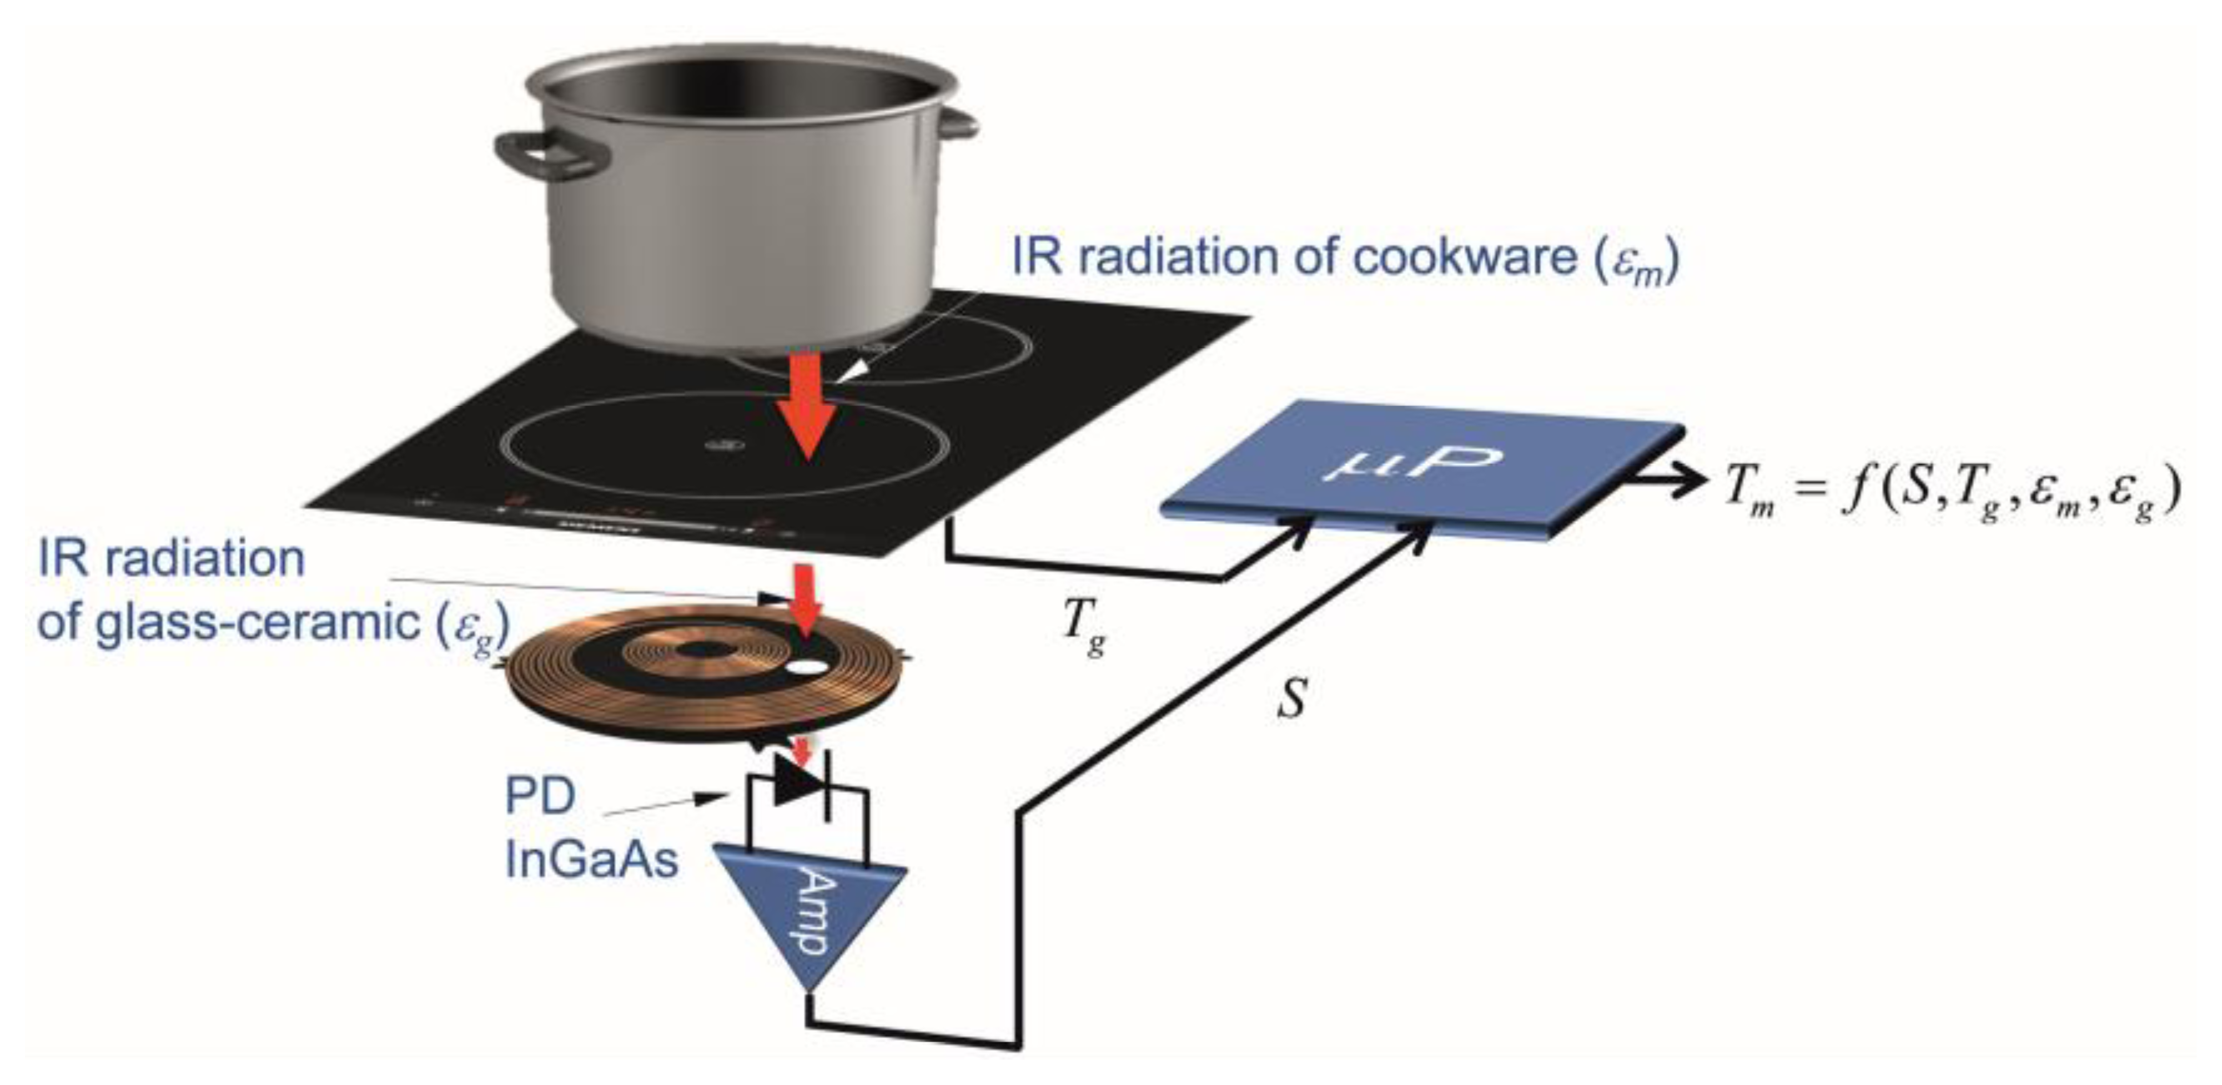 Sensors | Free Full Text | Infrared Sensor Based Temperature Control For  Domestic Induction Cooktops | HTML